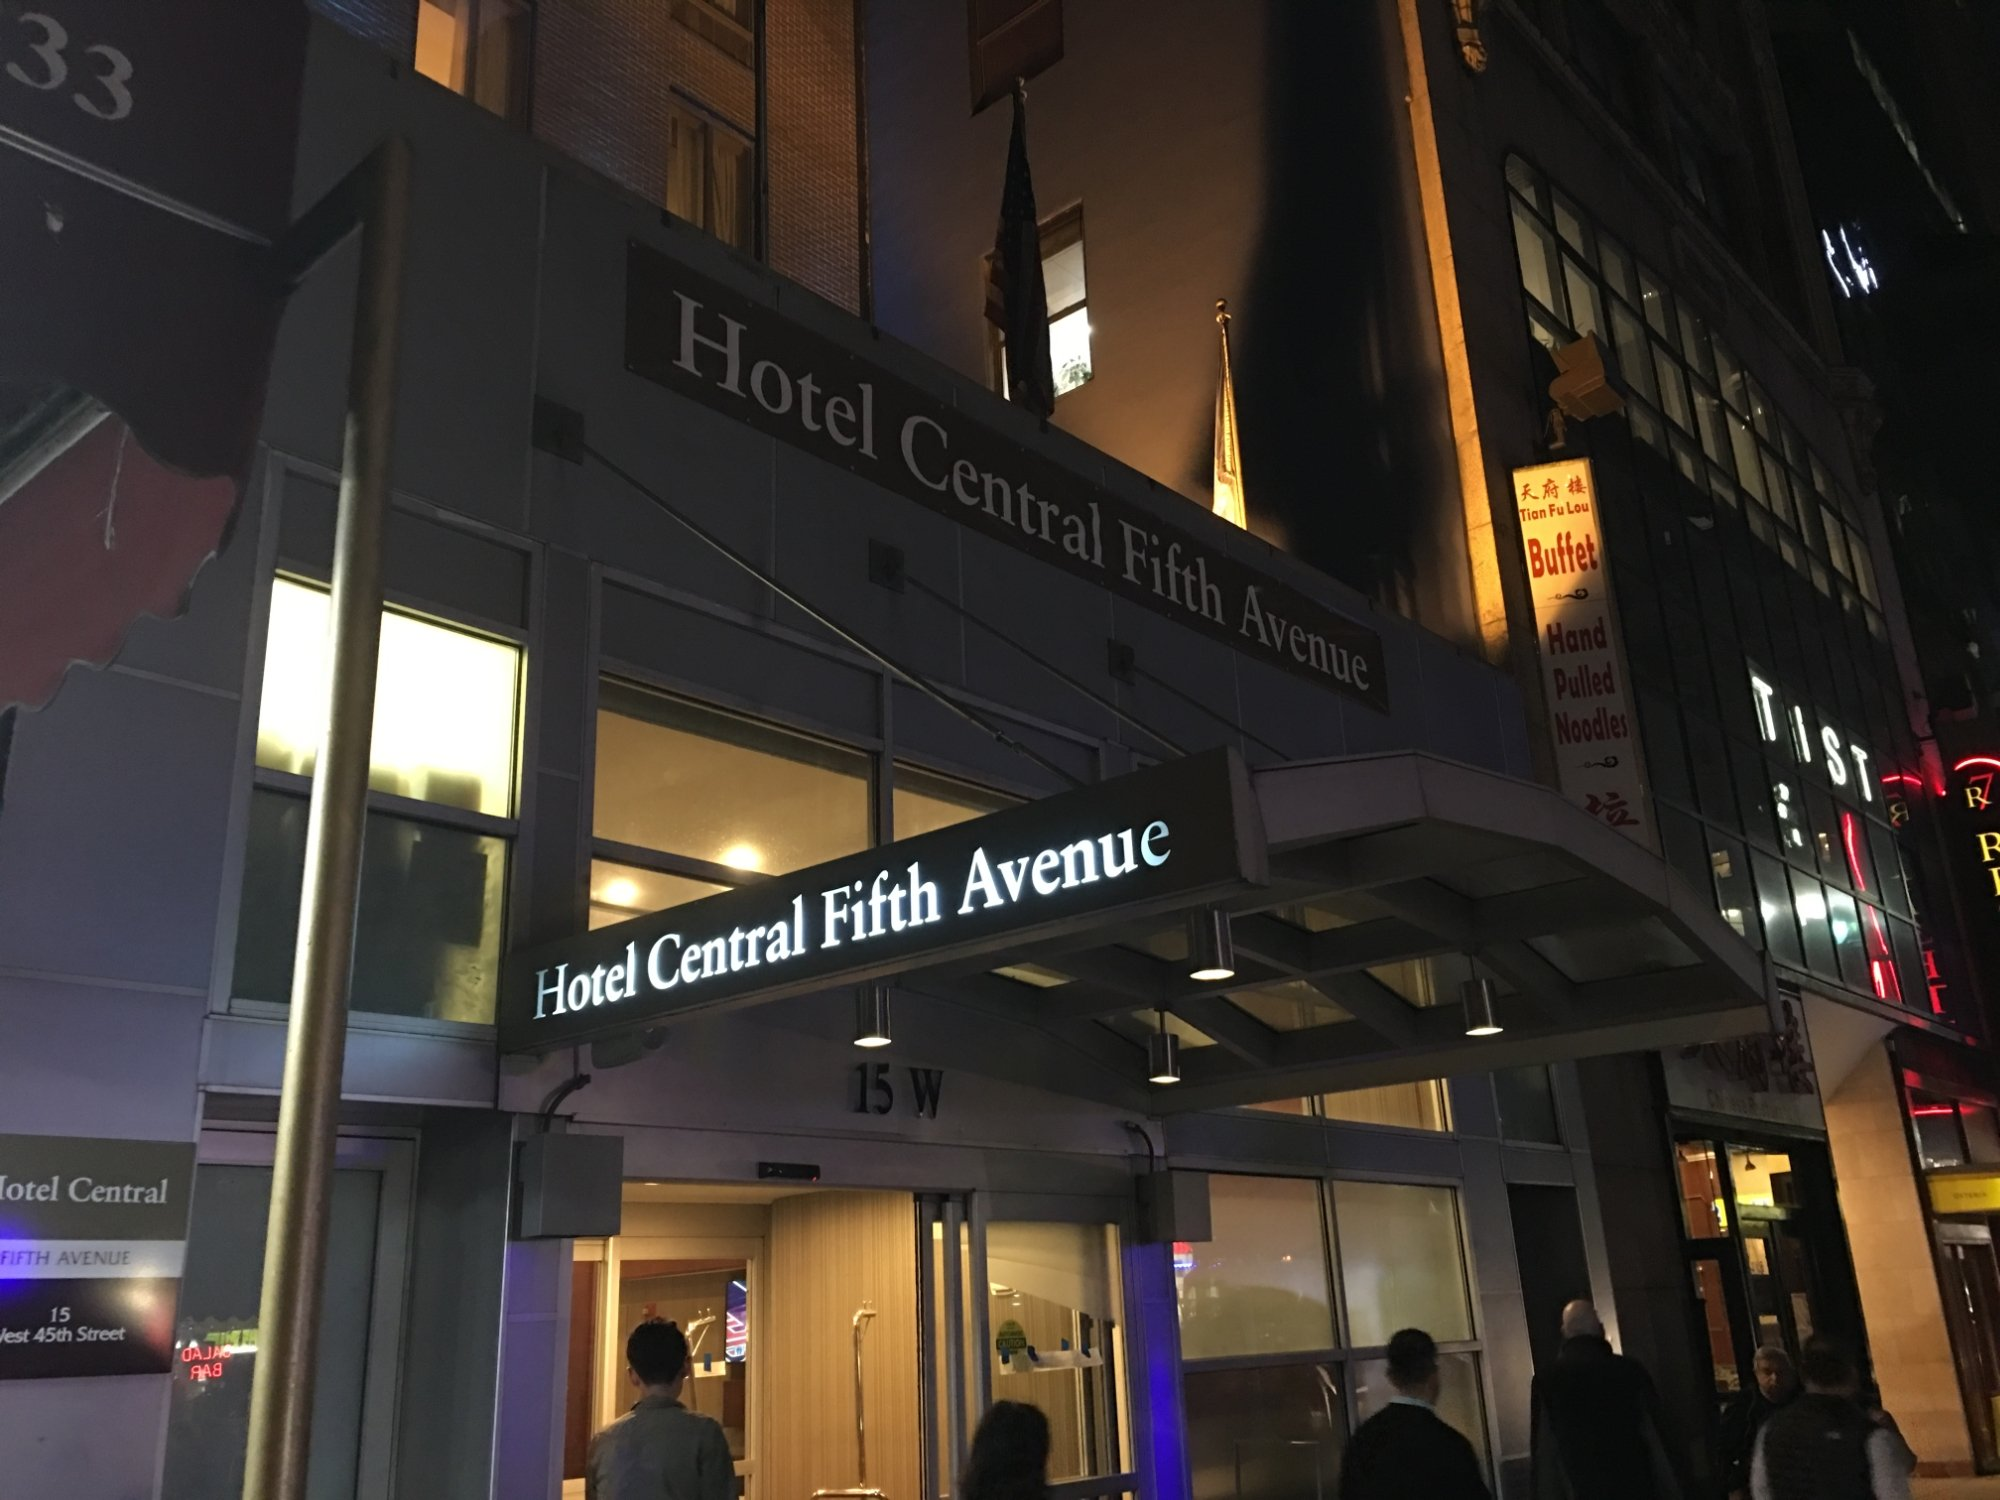 Hotel Central Fifth Avenue New York